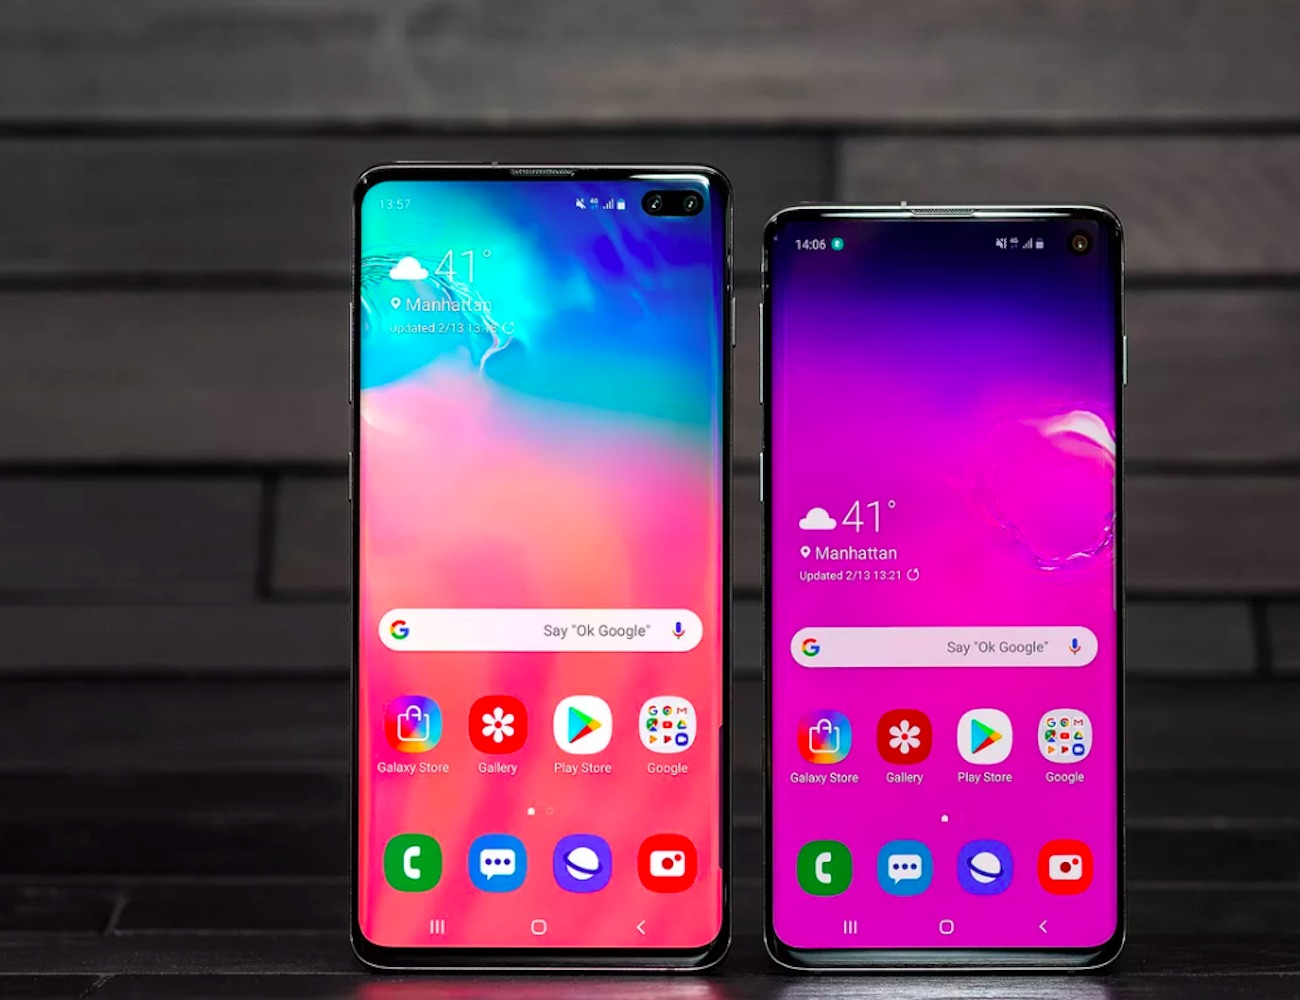 Samsung Galaxy S10 Next Generation Smartphone